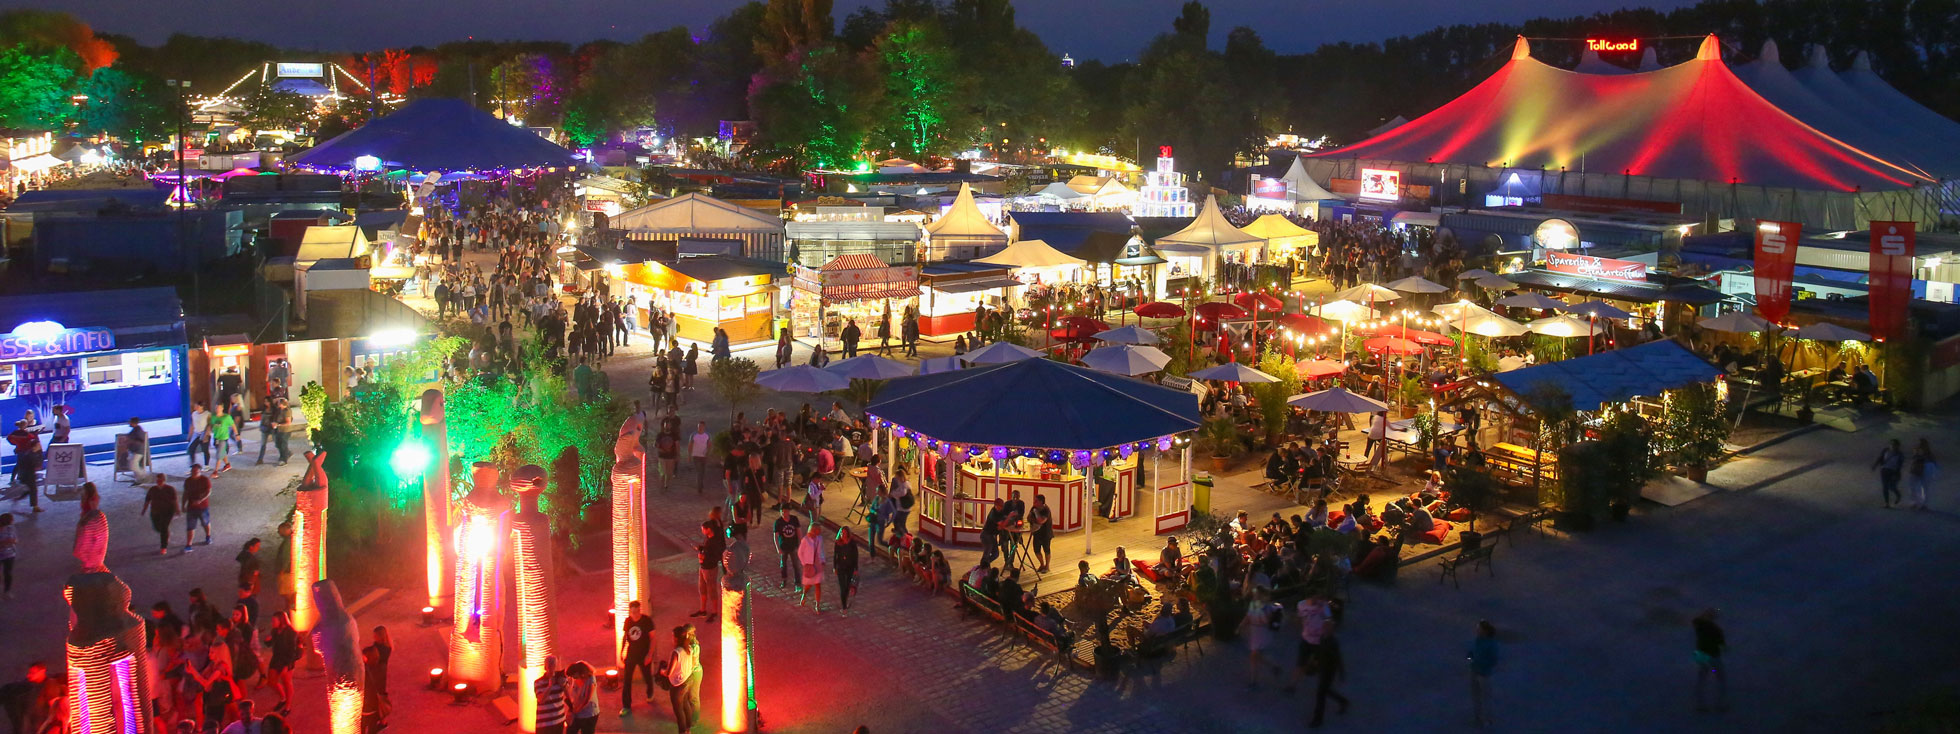 Tollwood Sommerfestival 2018 - Panorama, Foto: Bernd Wackerbauer